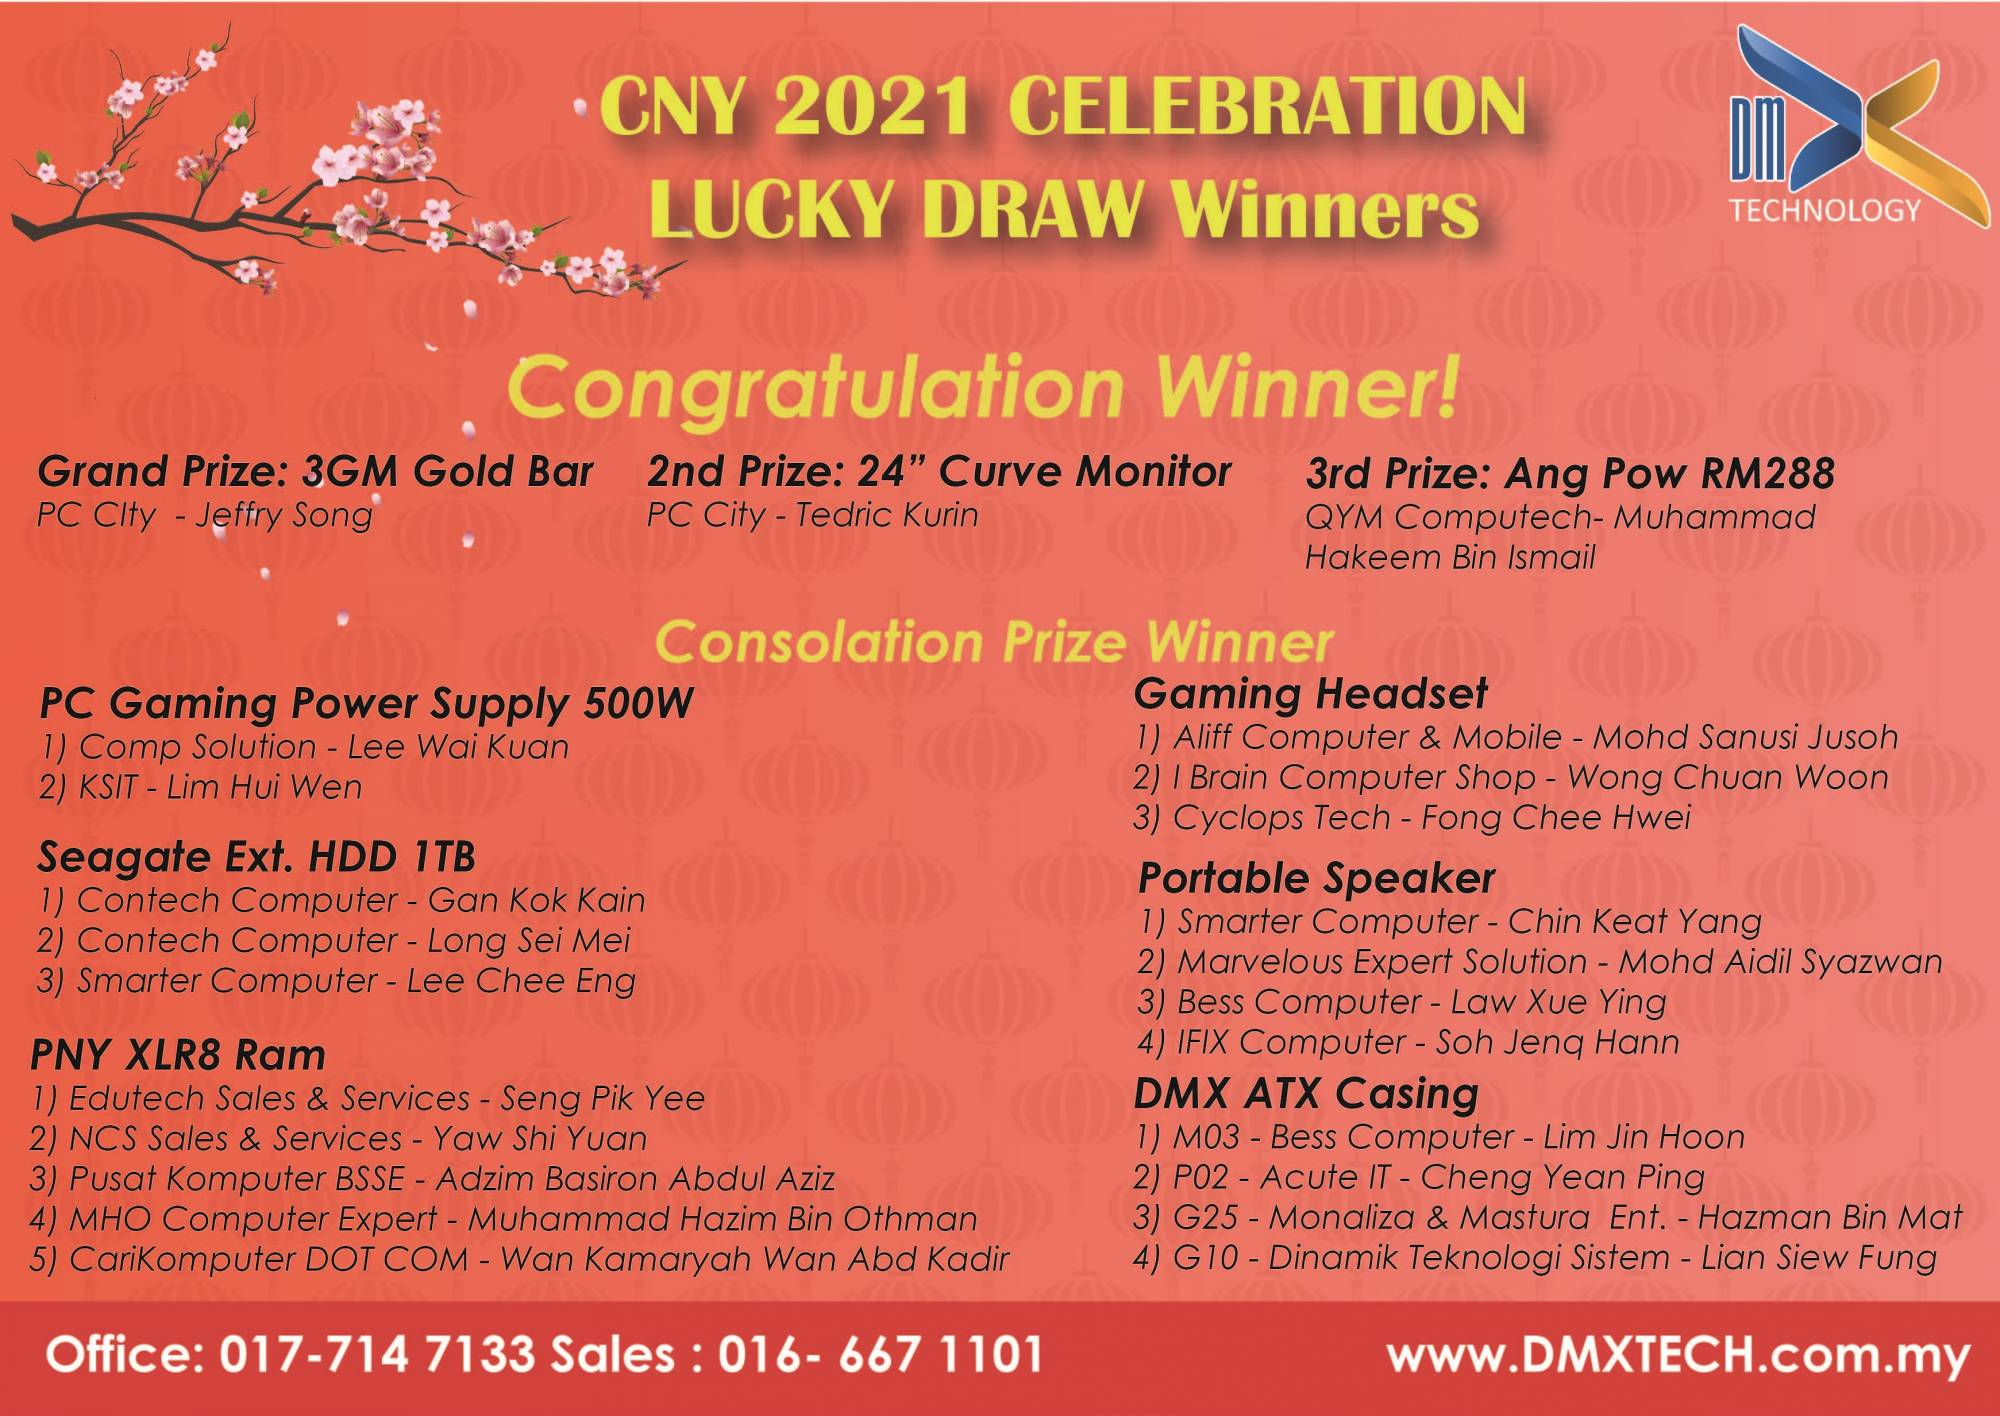 Congratulations to all Lucky Draw Winners!!